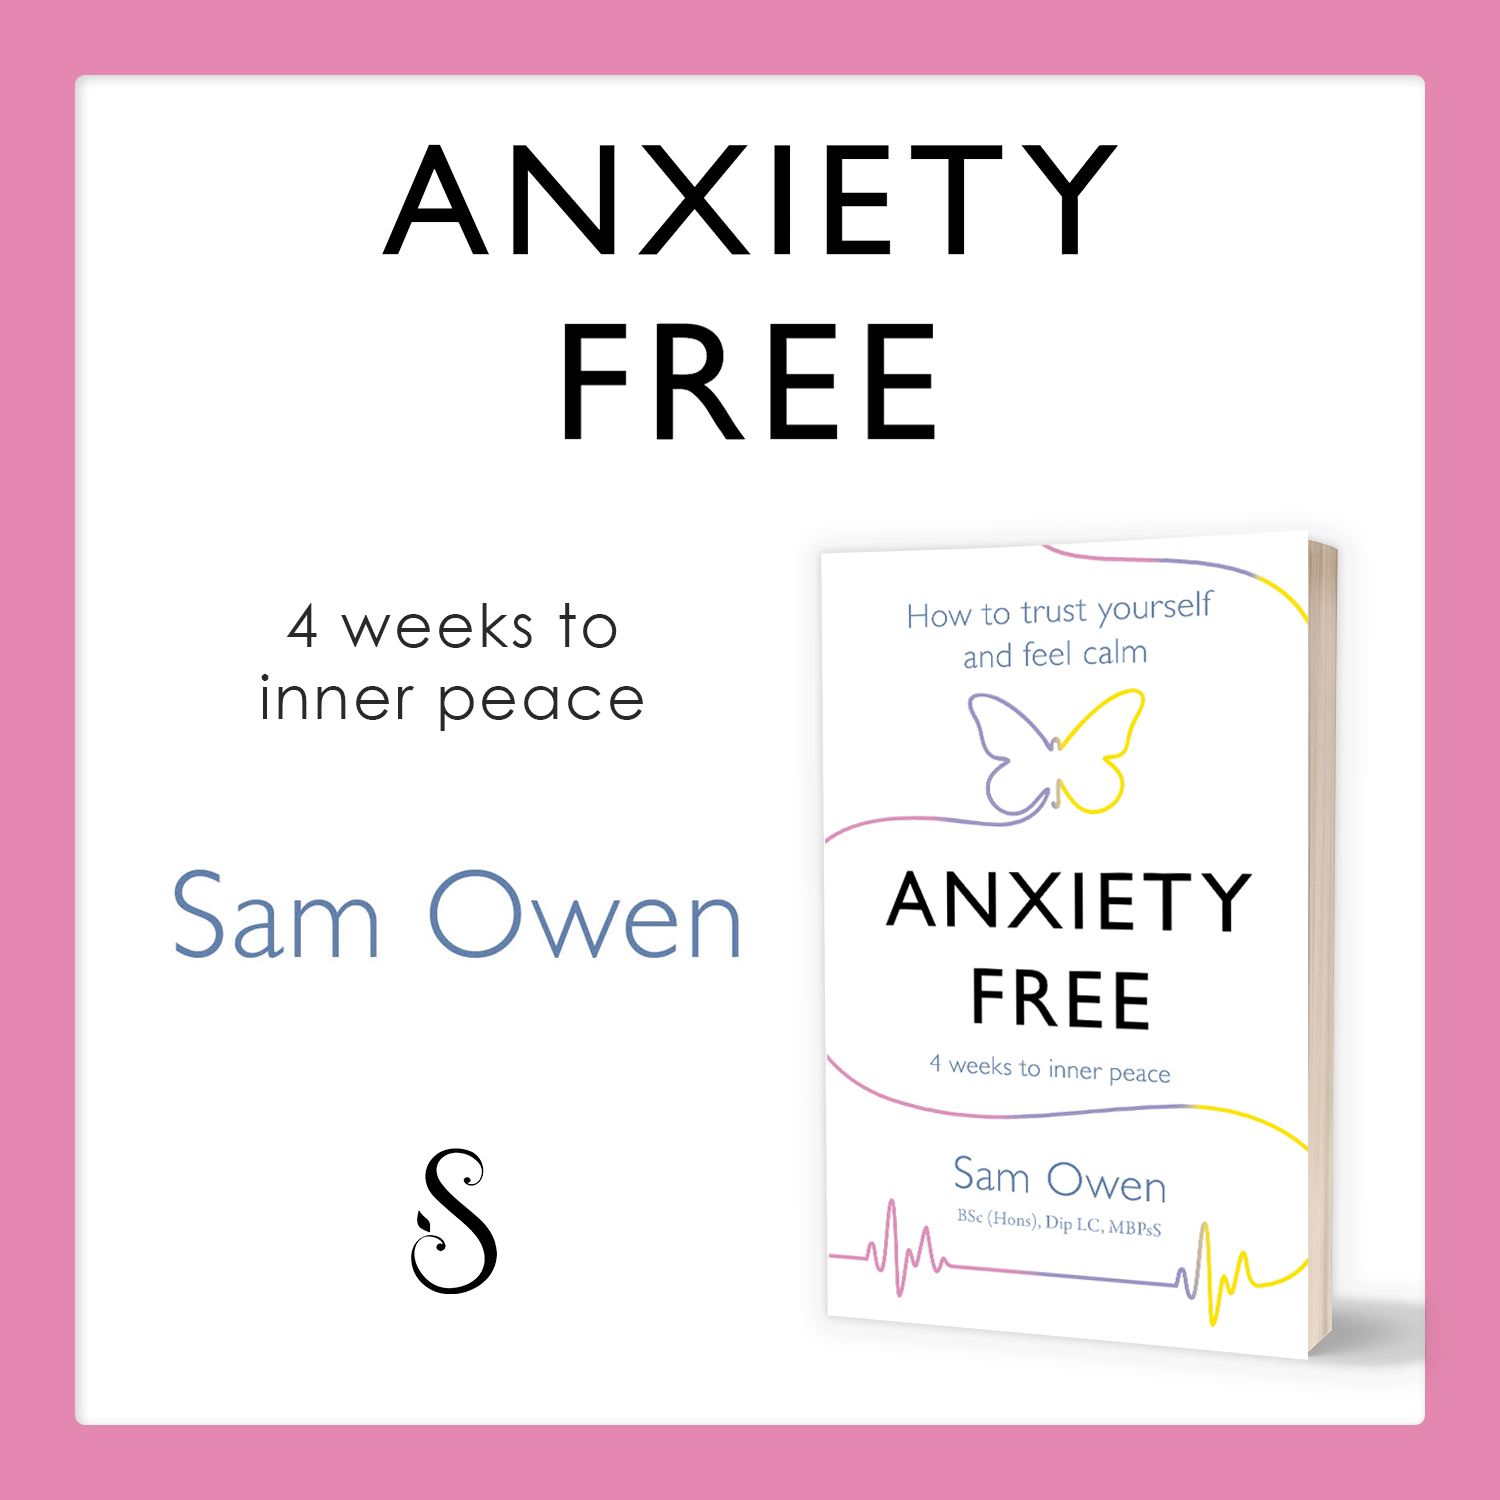 Anxiety Free by Relationship Coach Sam Owen - self-help book